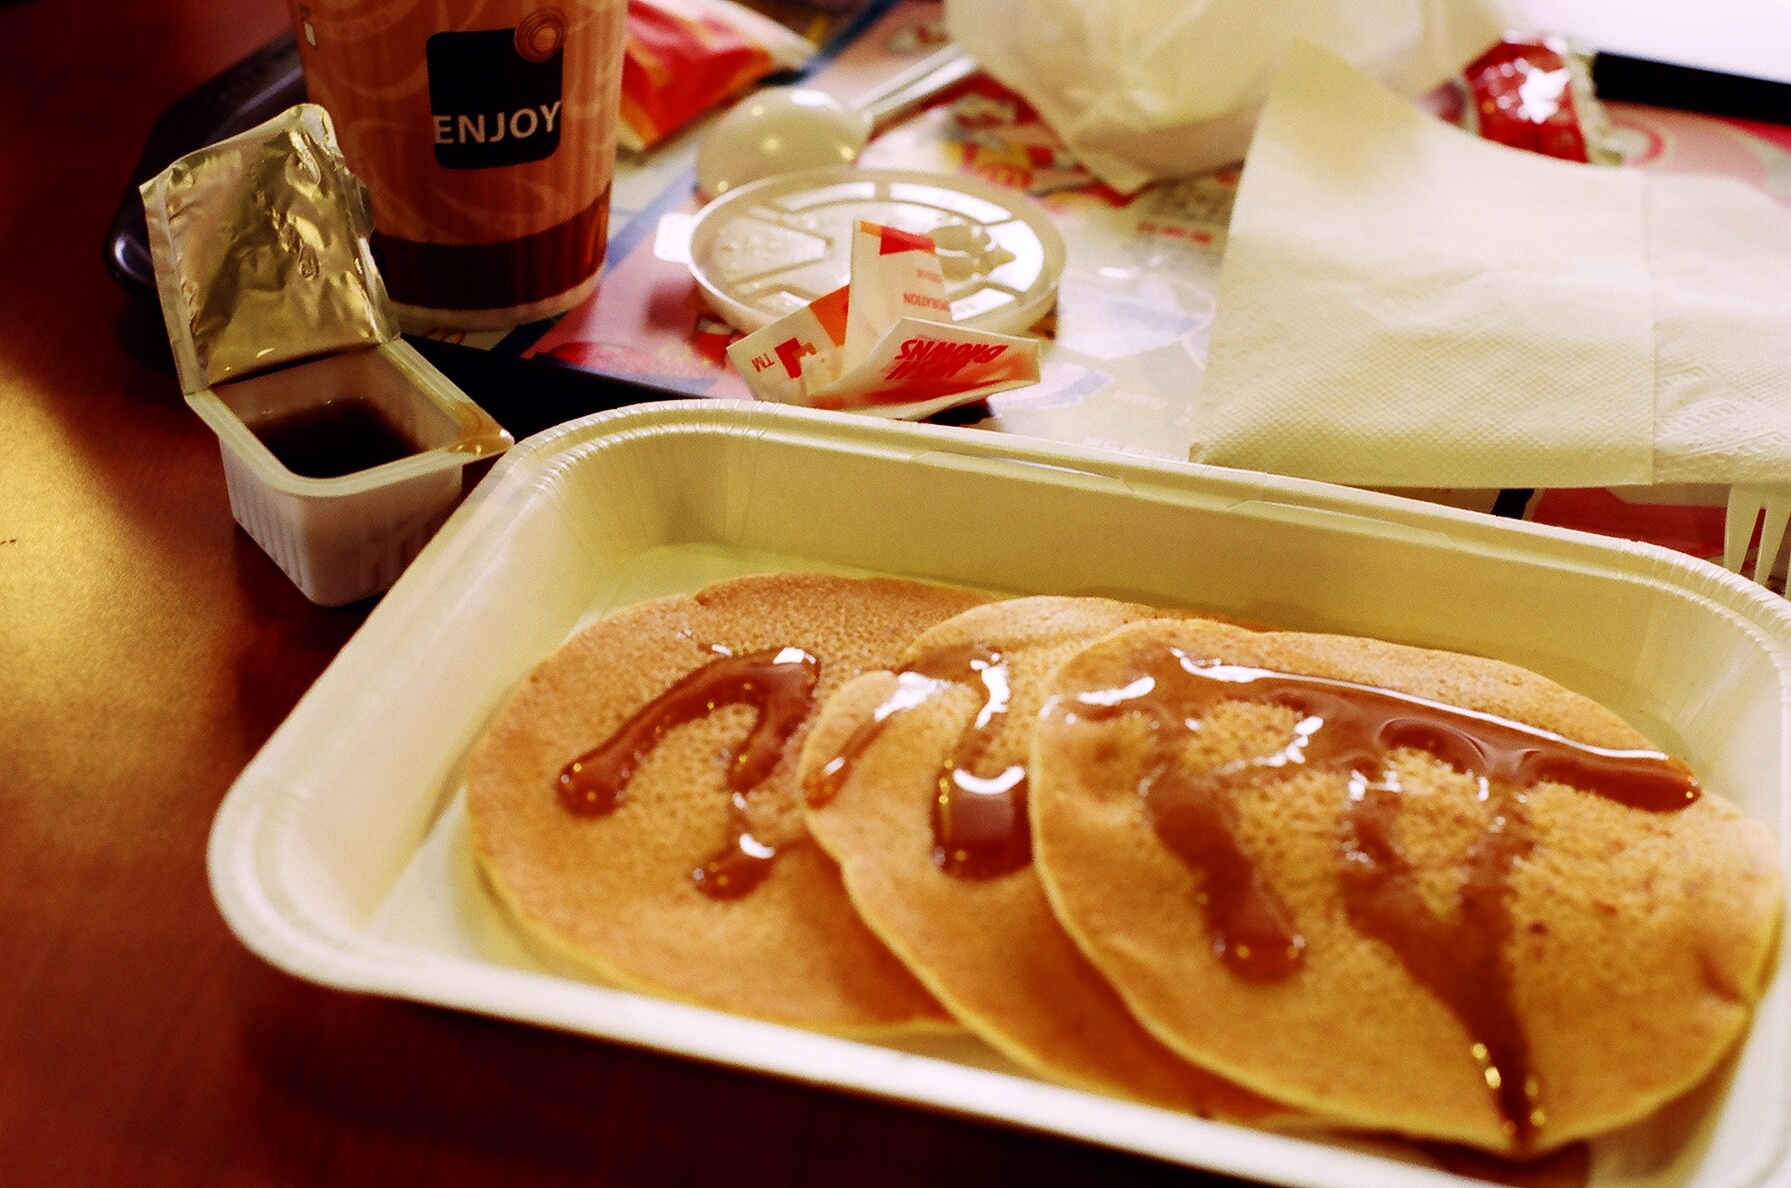 Photo courtesy of flickr user yanki01 Hot cakes are one of the options that will be featured on the McDonald's all-day breakfast menu.